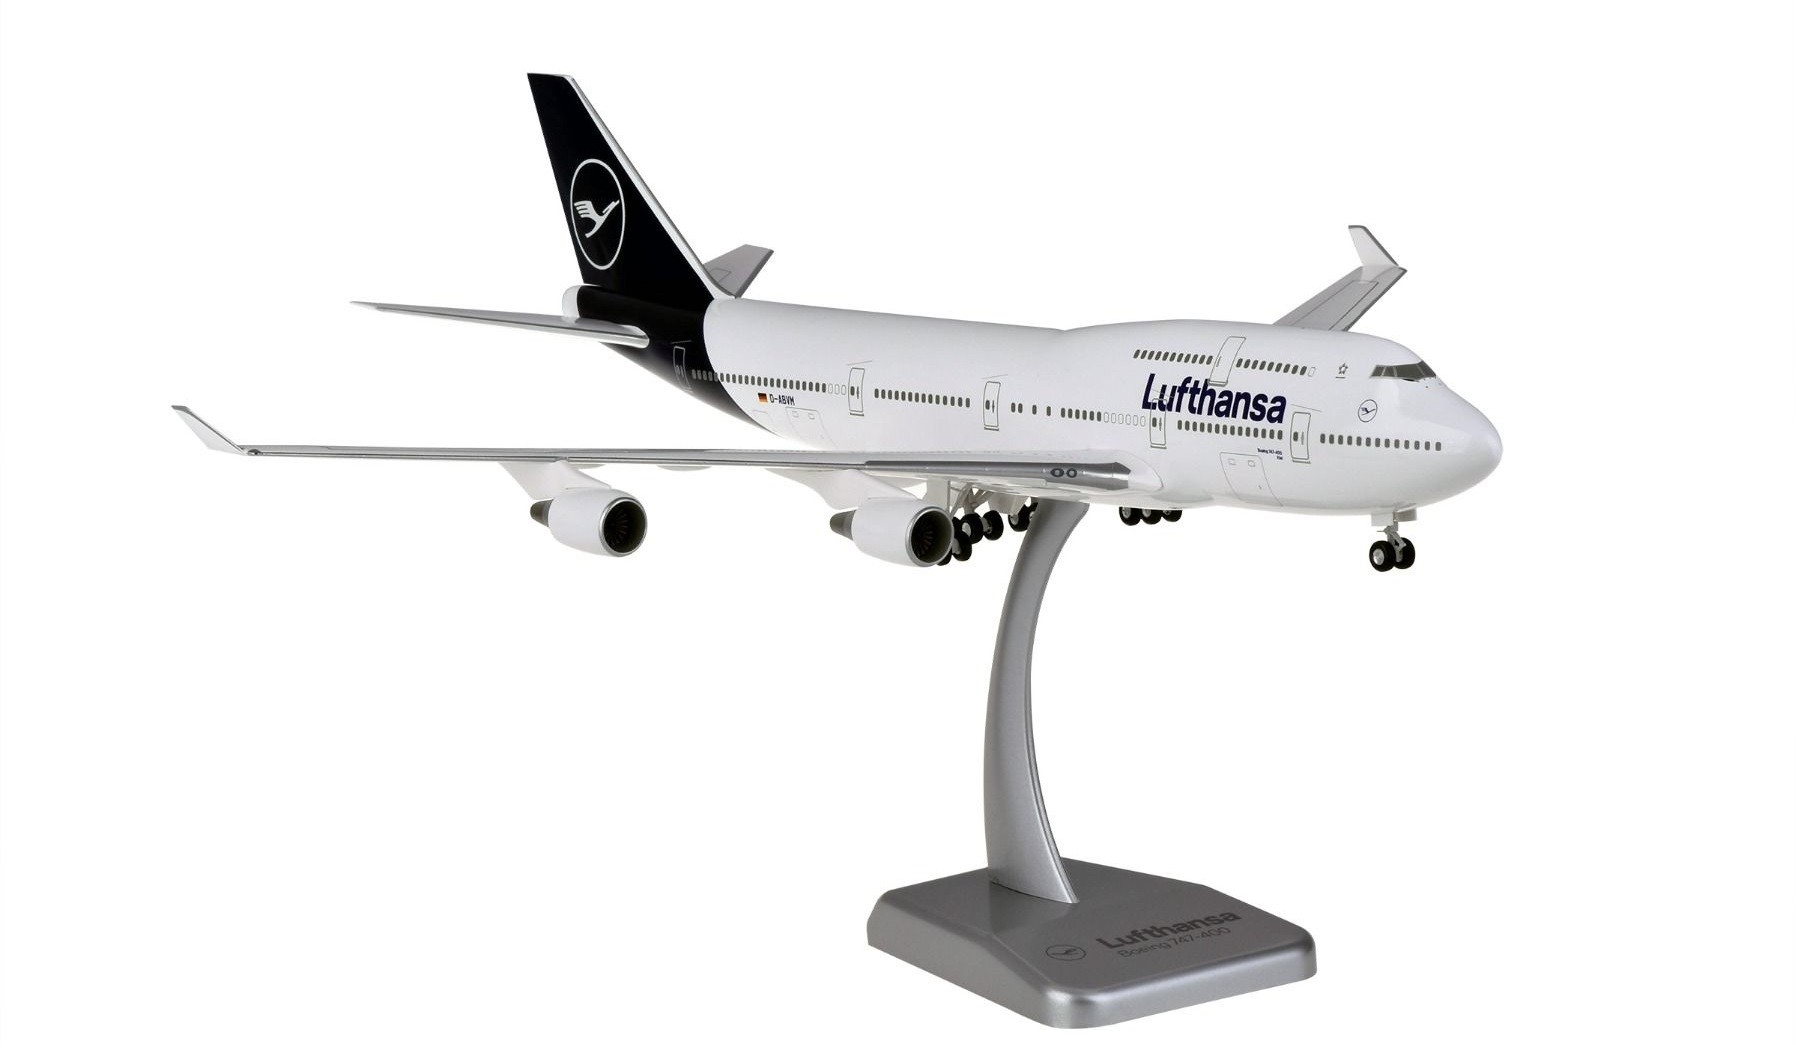 Lufthansa new livery Boeing 747-400 D-ABVM with gears & stand Hogan HGDLH009 Scale 1:200